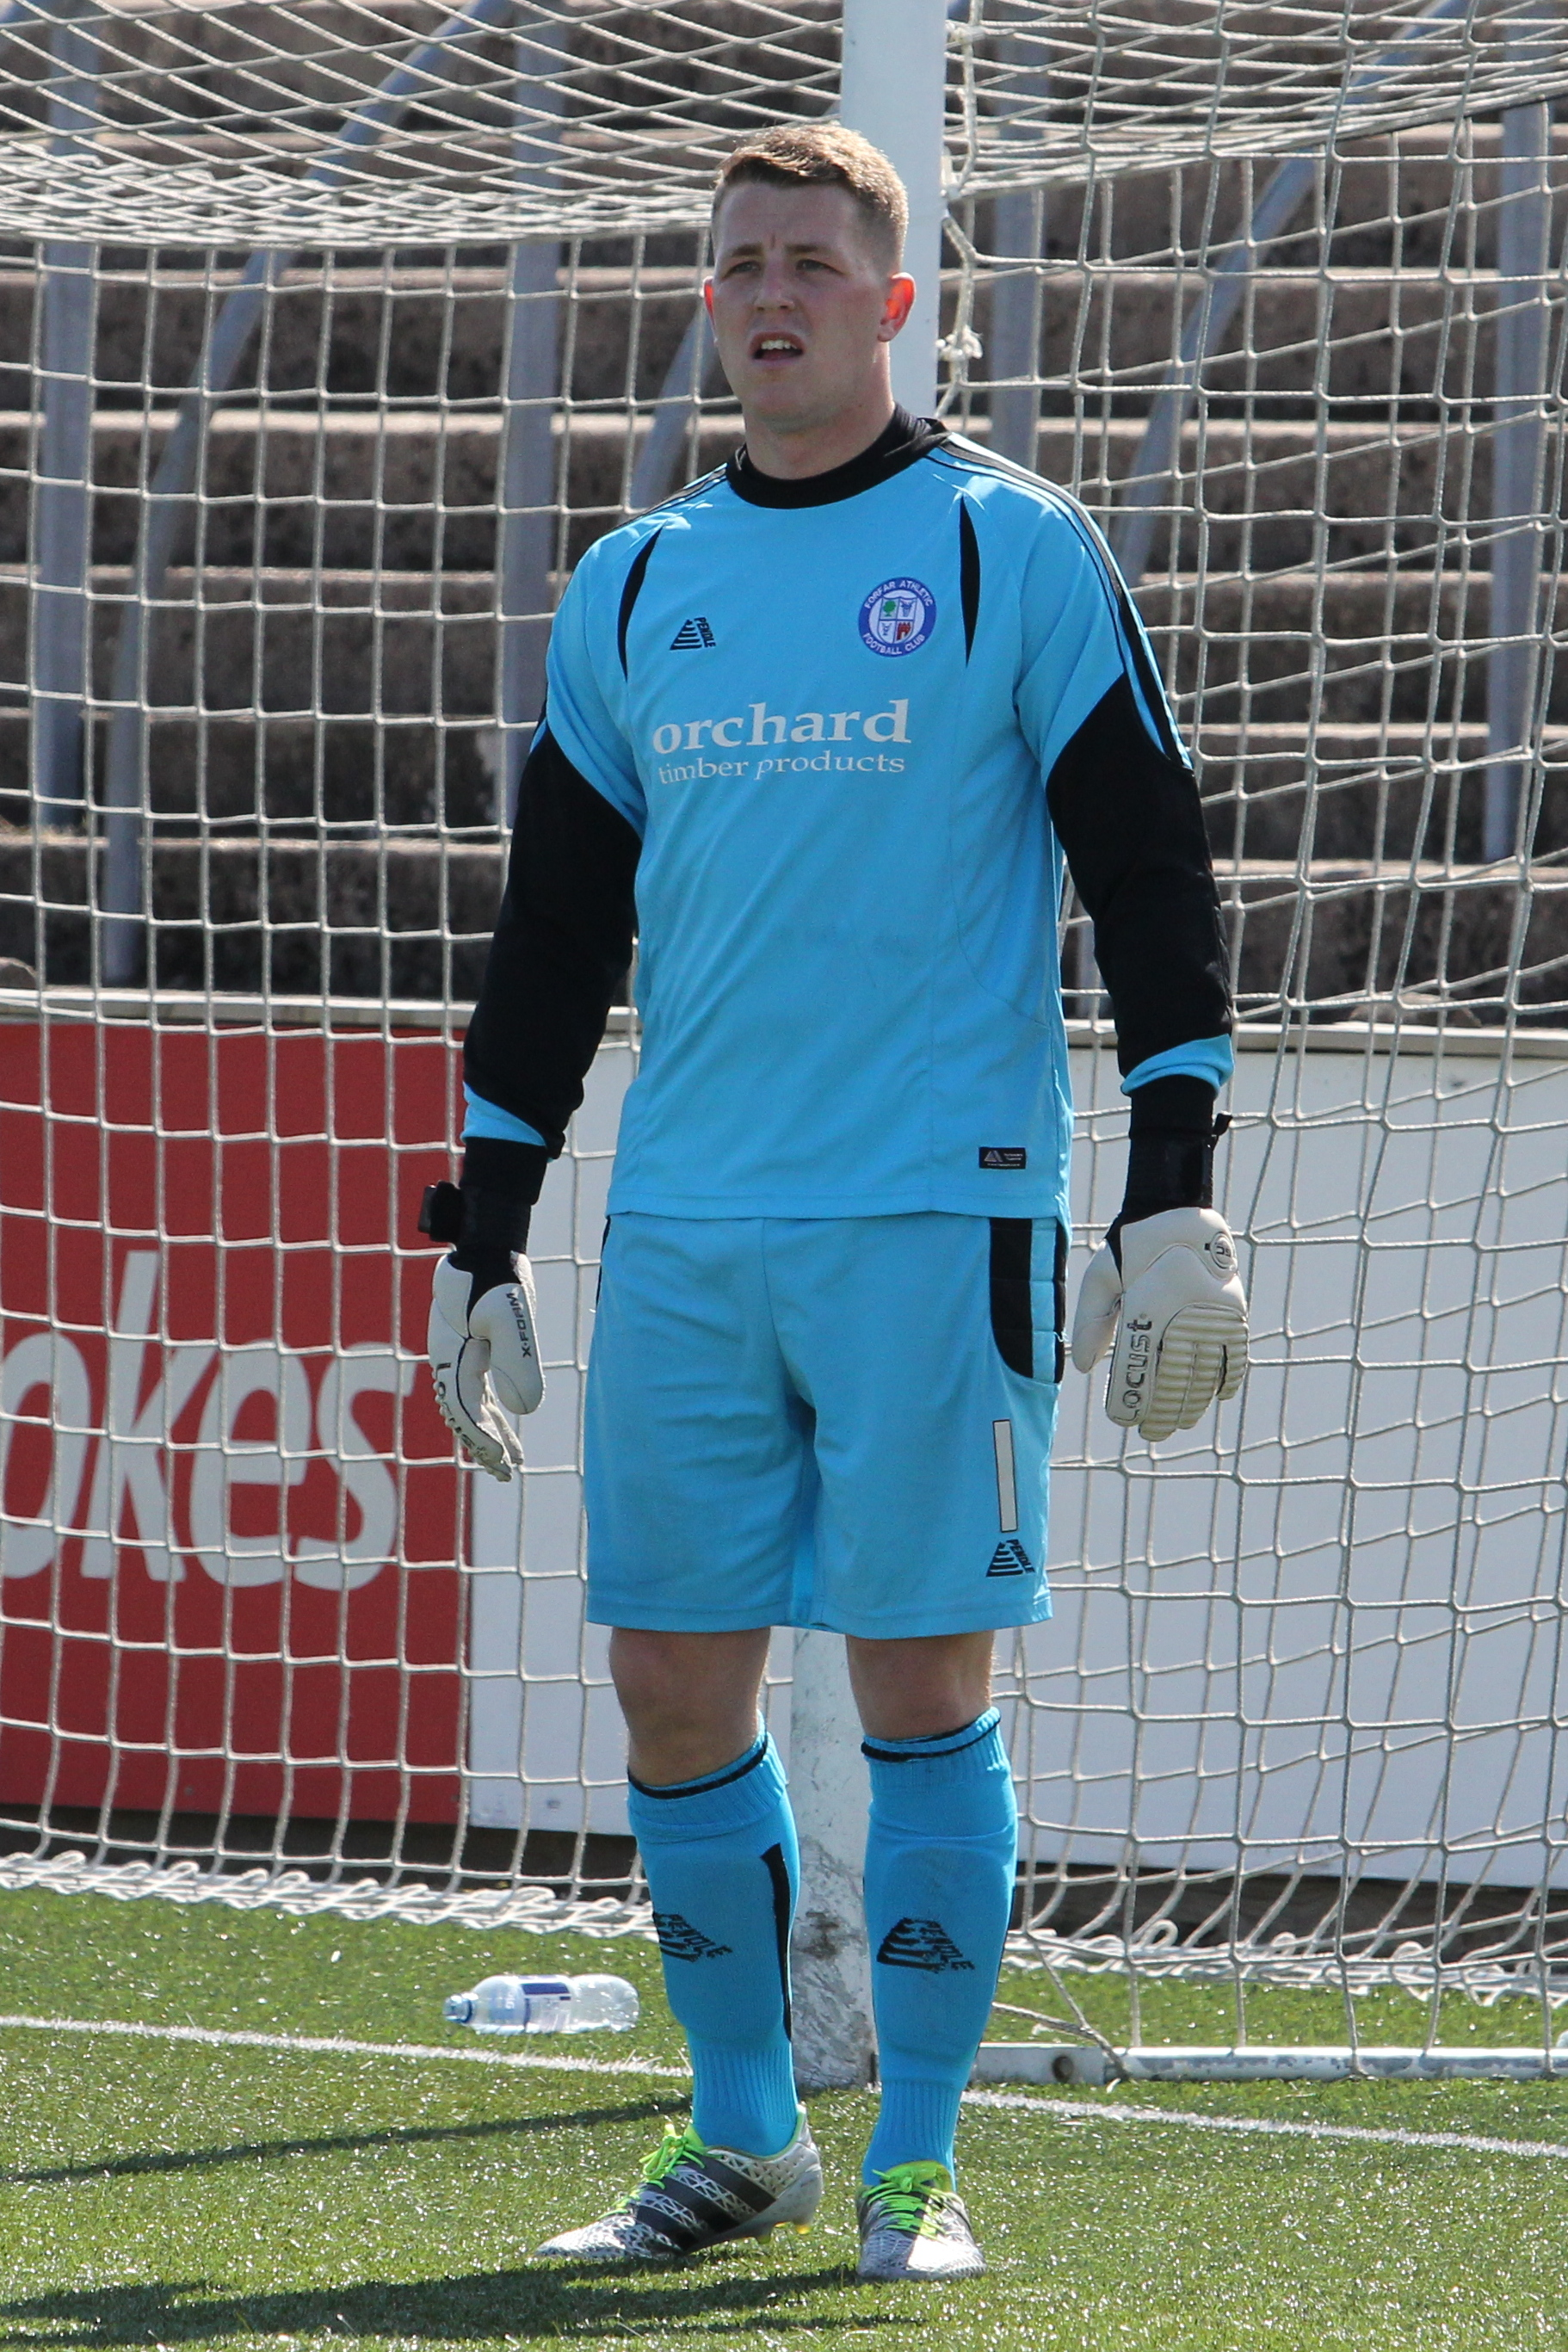 FAFC Goalkeeper Kit